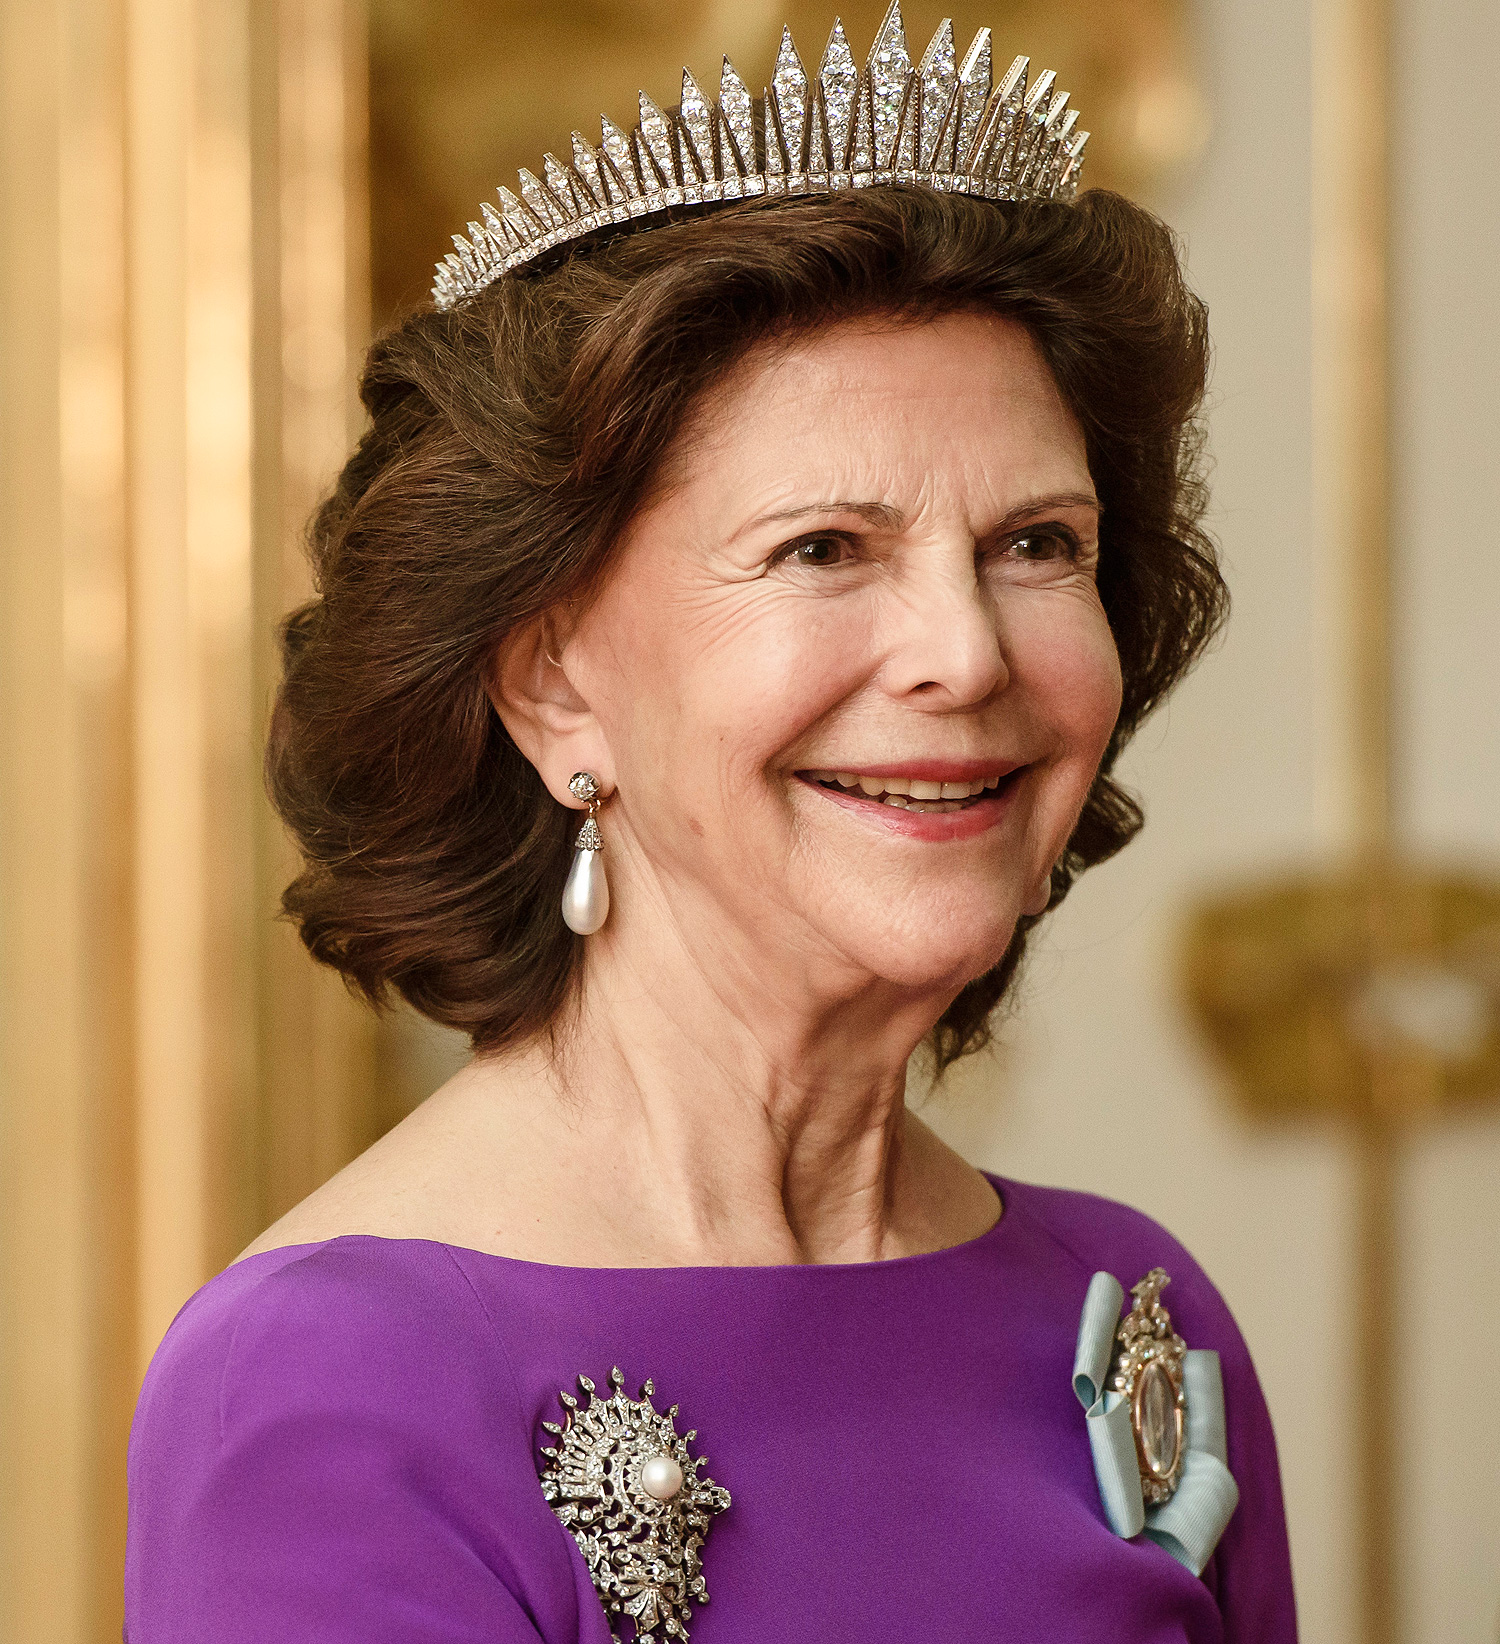 King Carl XVI Gustaf and Queen Silvia Visit Germany